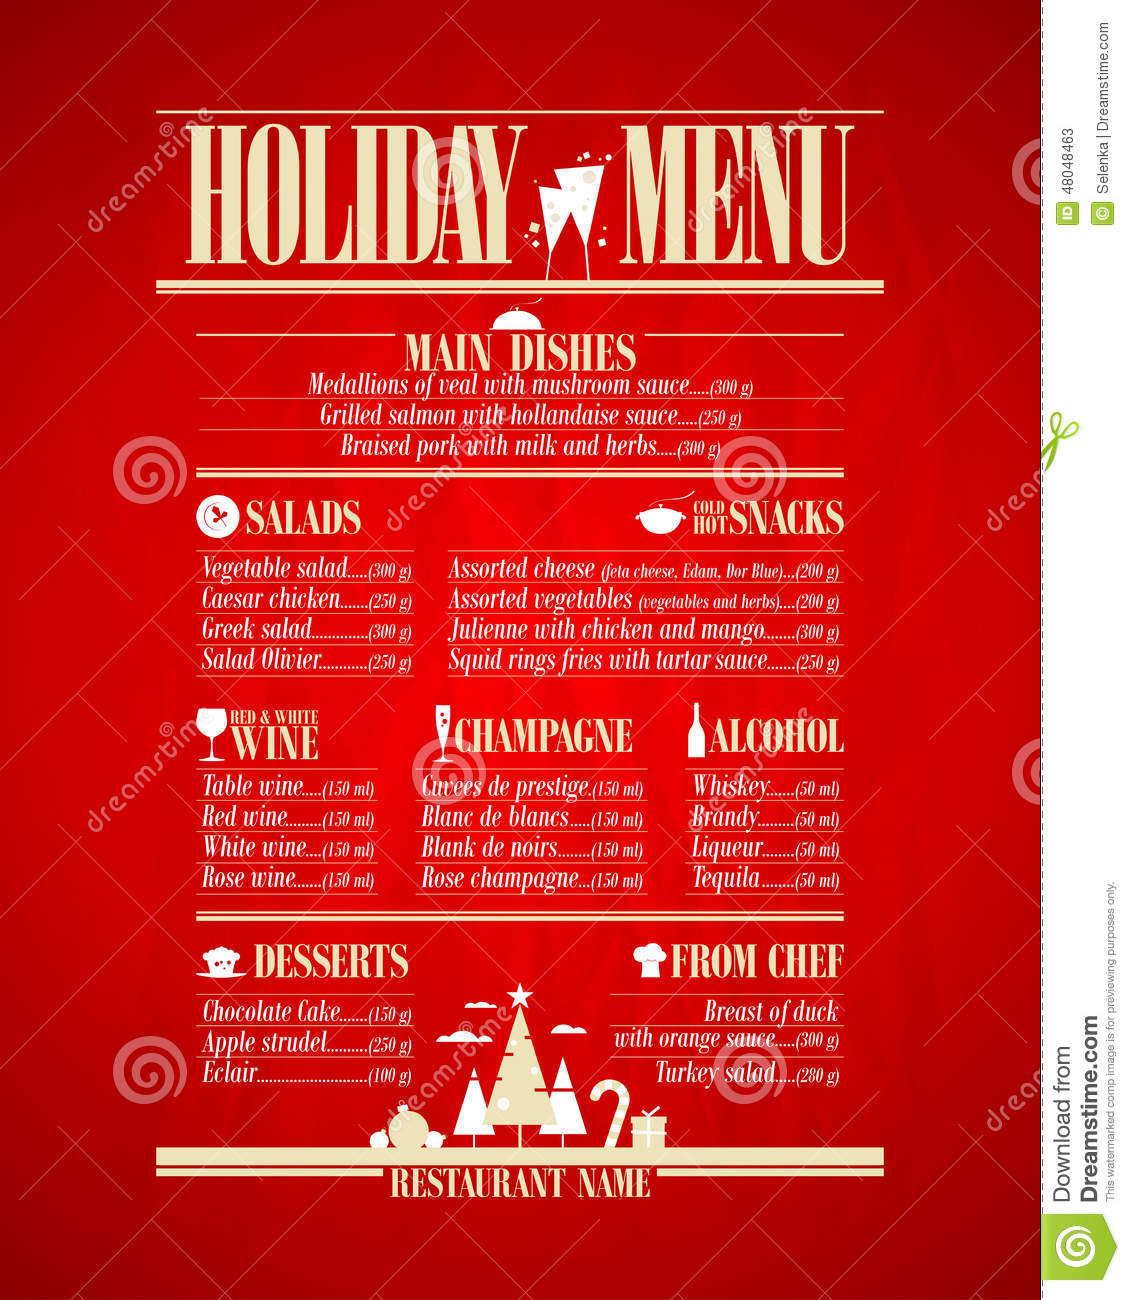 Holiday Menu List, New Year. Stock Illustration - Image: 48048463